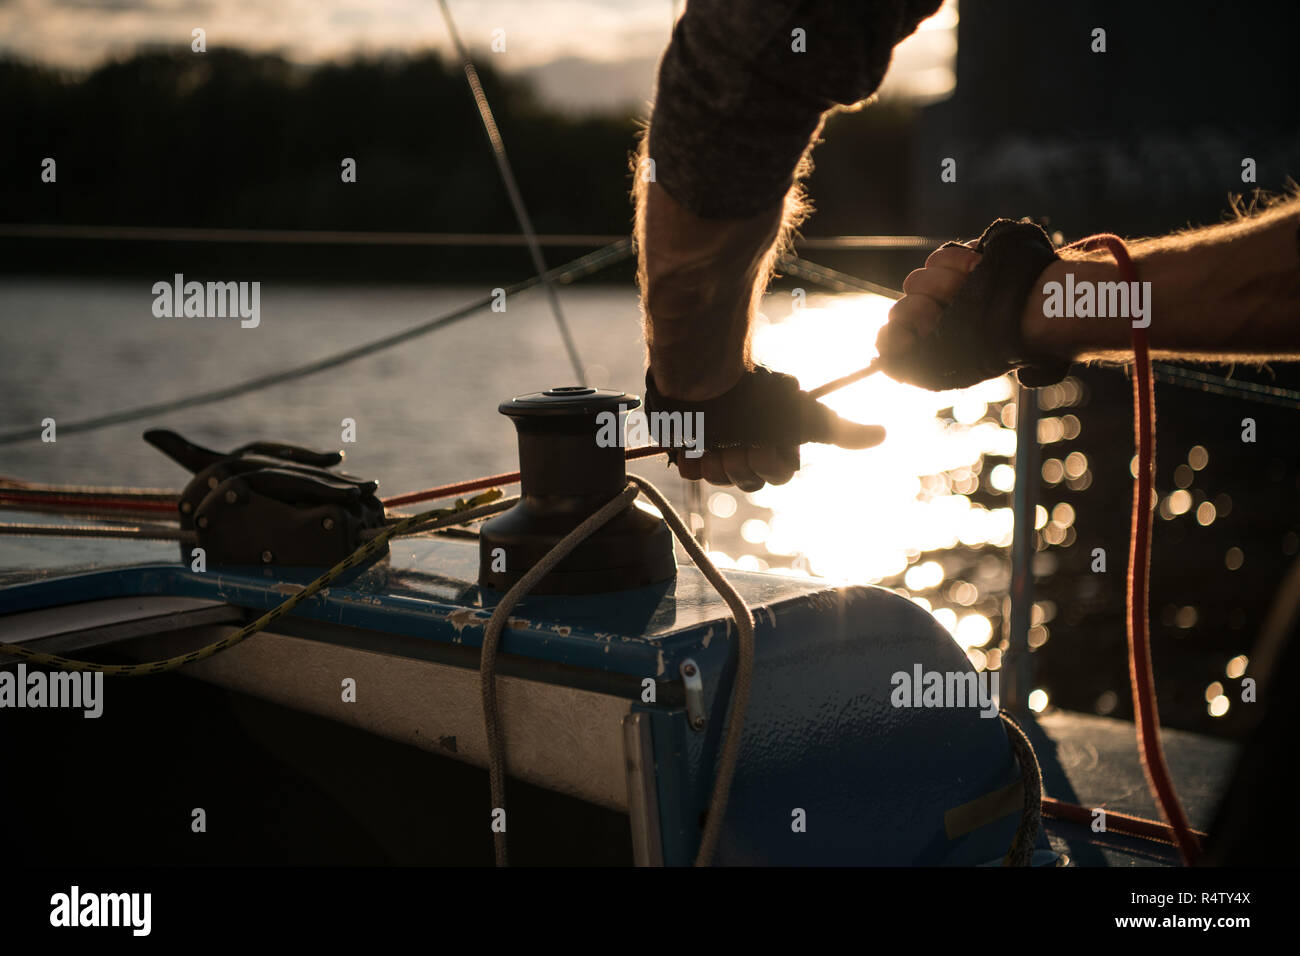 Silhouette of a sailors hands on a winch rope on a sailboat on a sunset. Shot with a selective focus. - Stock Image